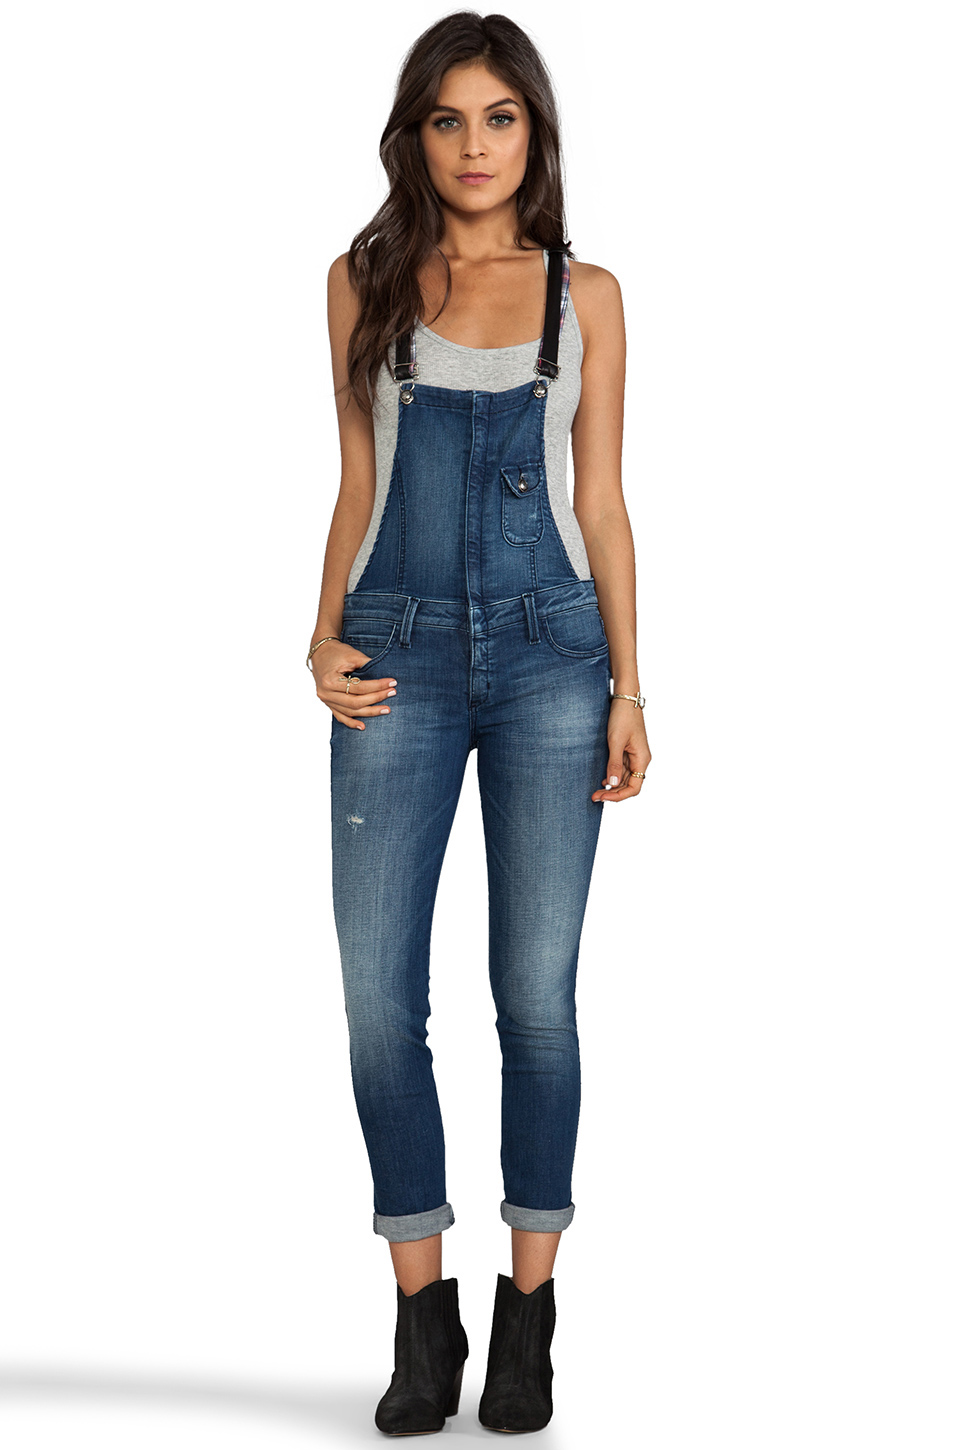 Frankie B. Jeans Hipster Overall with Leather Strap en Japan Blue | REVOLVE